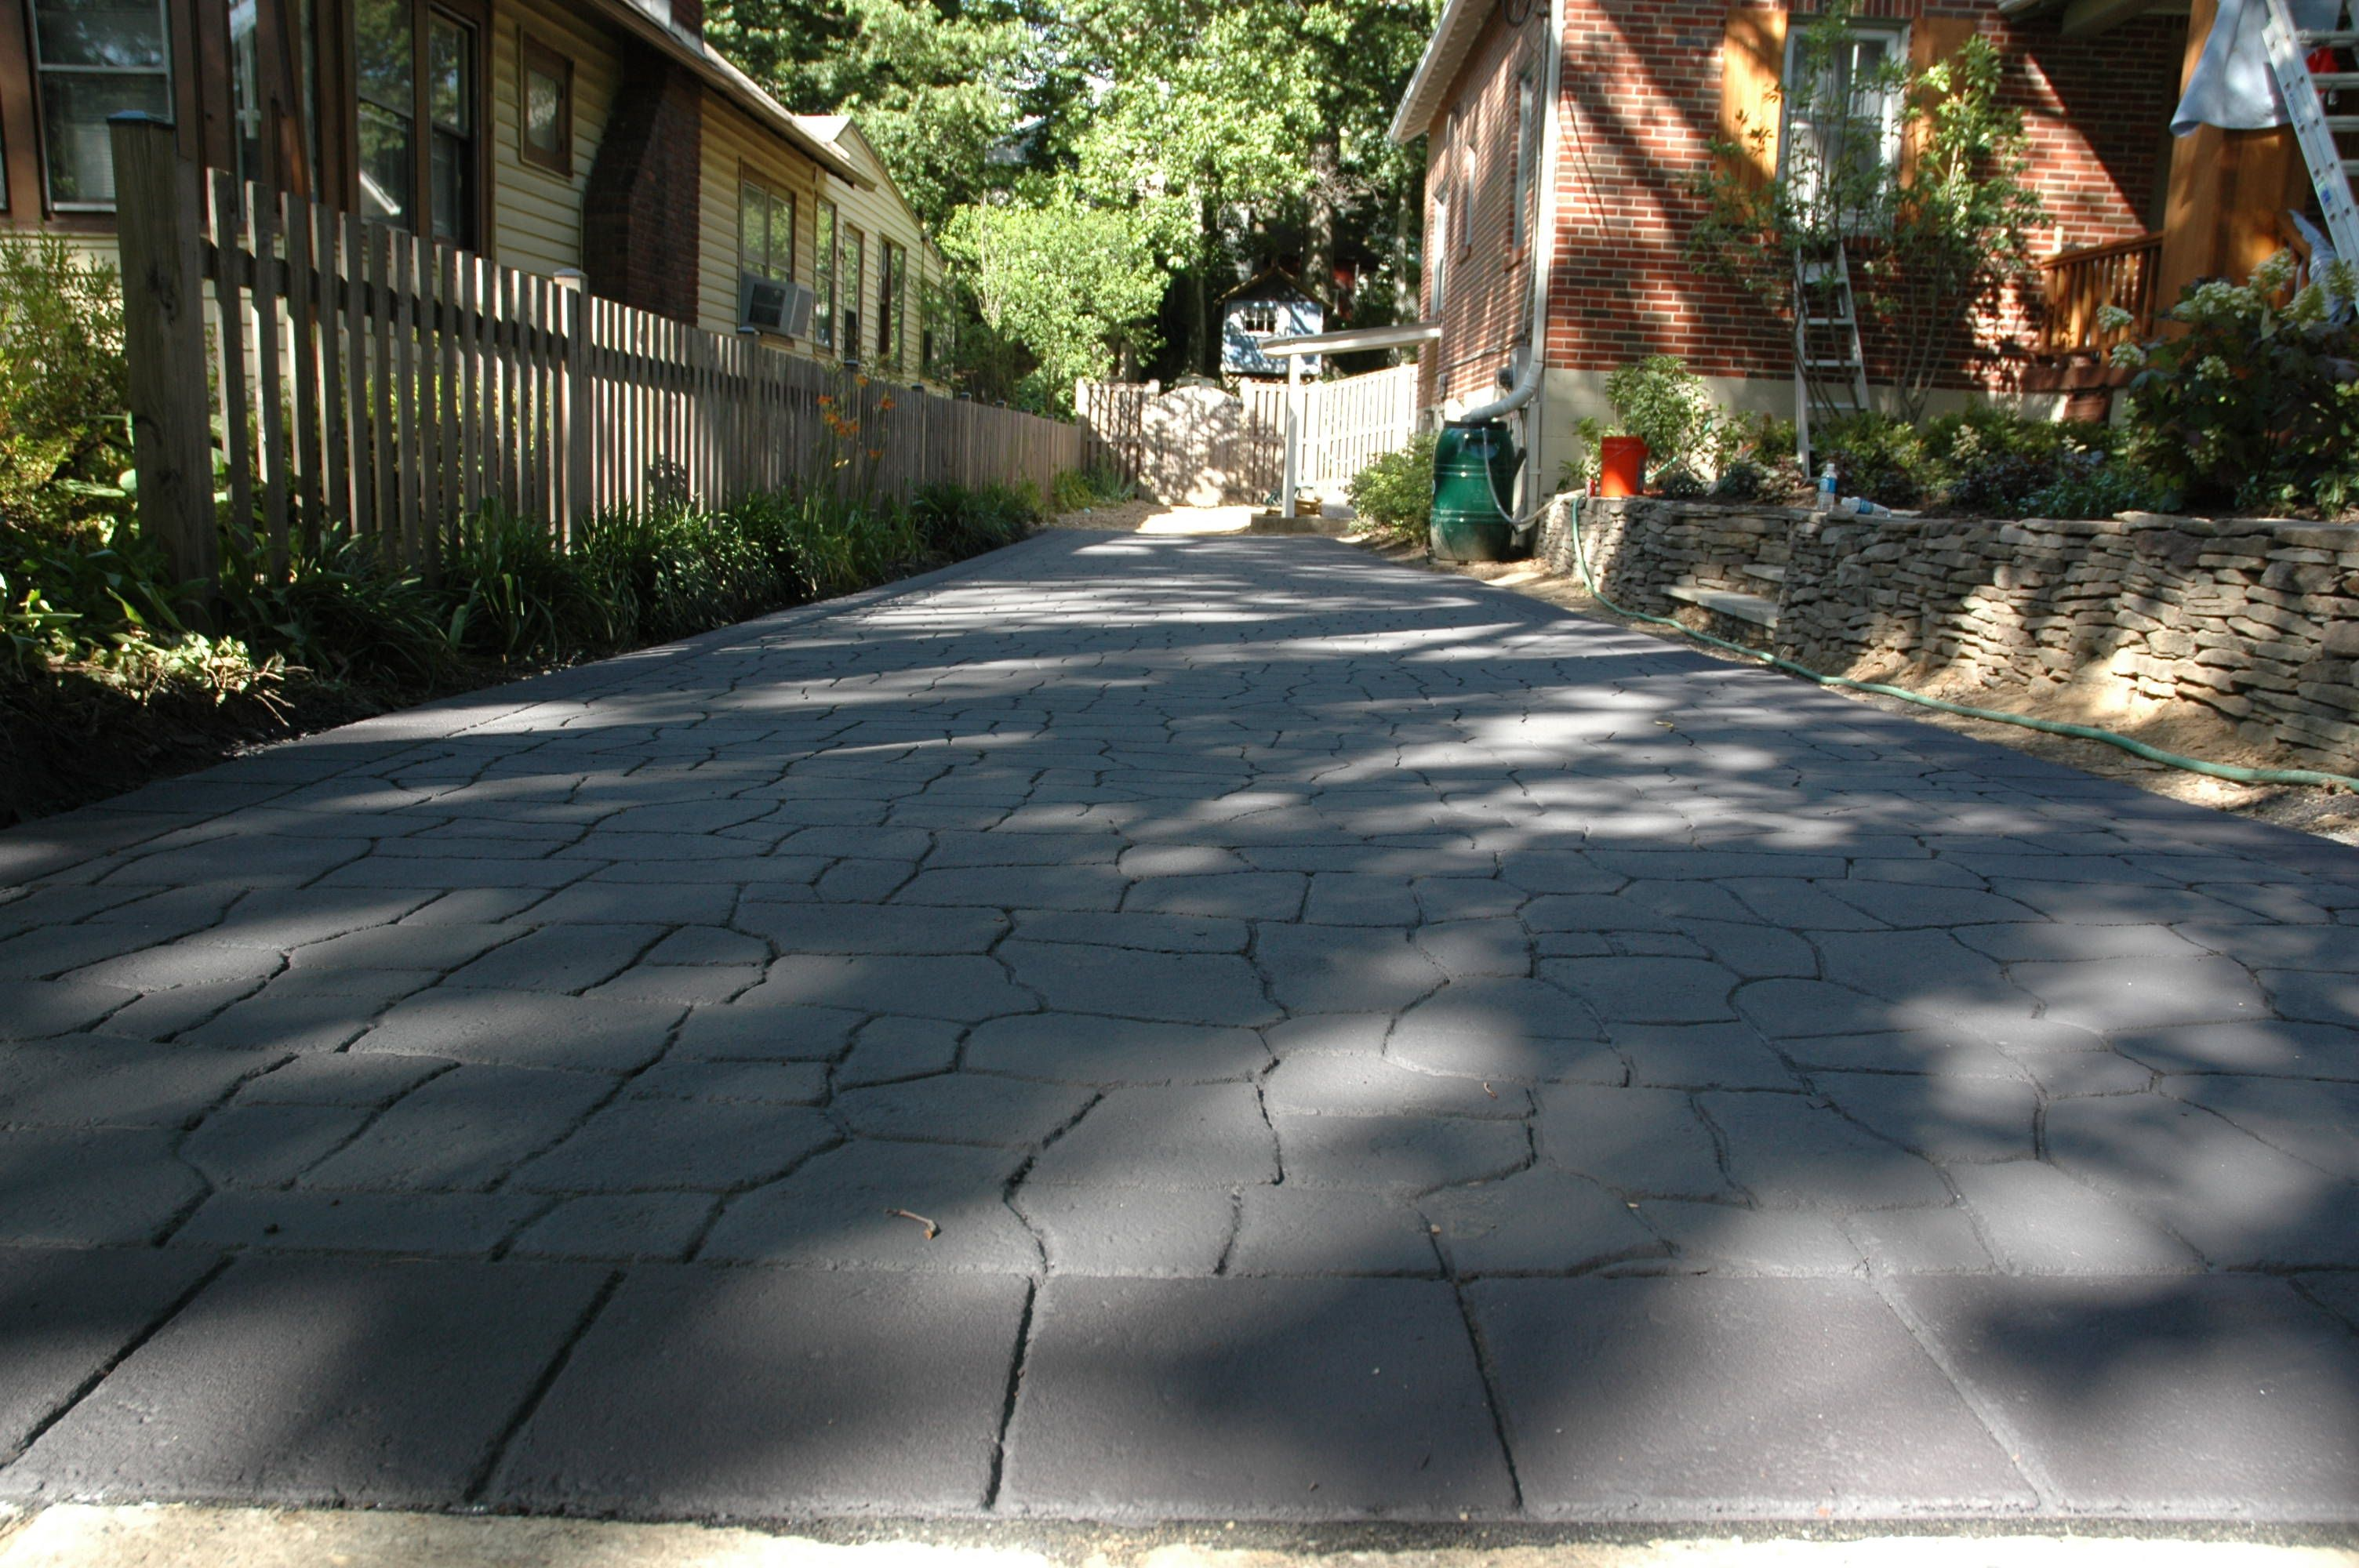 About How Much Does a Stamped Asphalt Driveway Cost